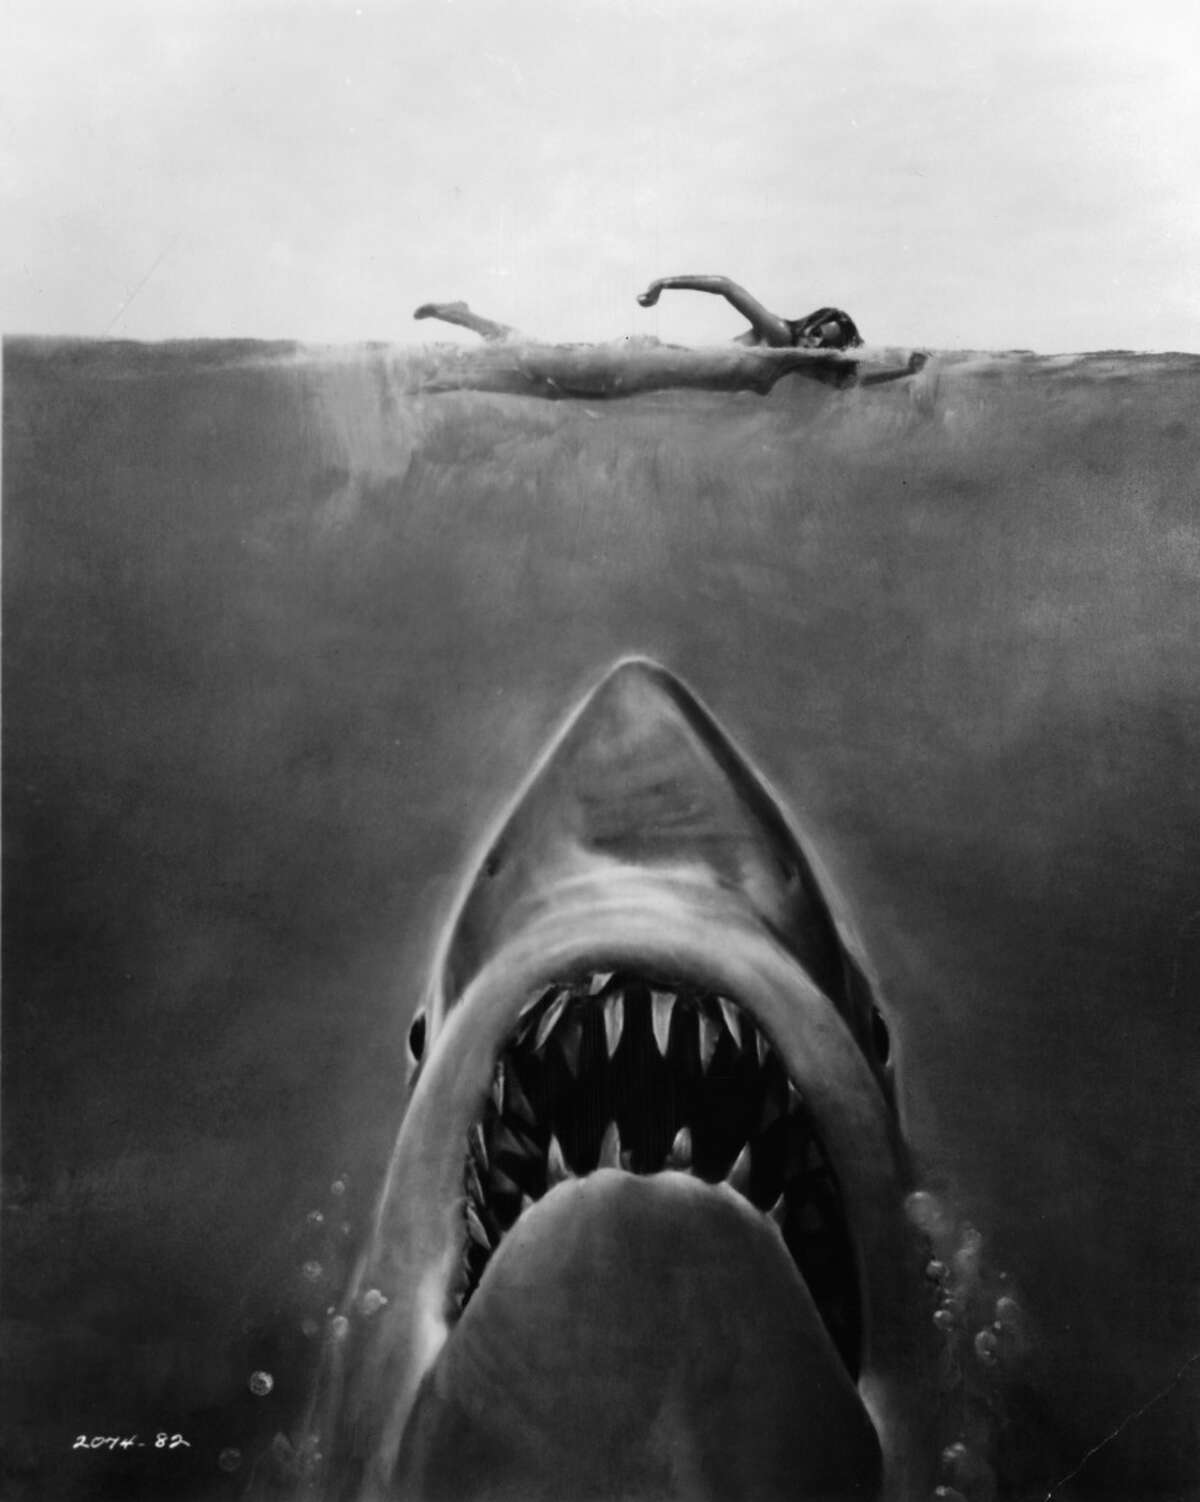 Fiction: Sharks eat humans. Well, they do, but often by accident. Some sharks are carnivores, and typically feed on fish, squid and other sea foods. Other sharks don't even hunt; they eat microscopic plankton. Source: PBS.org